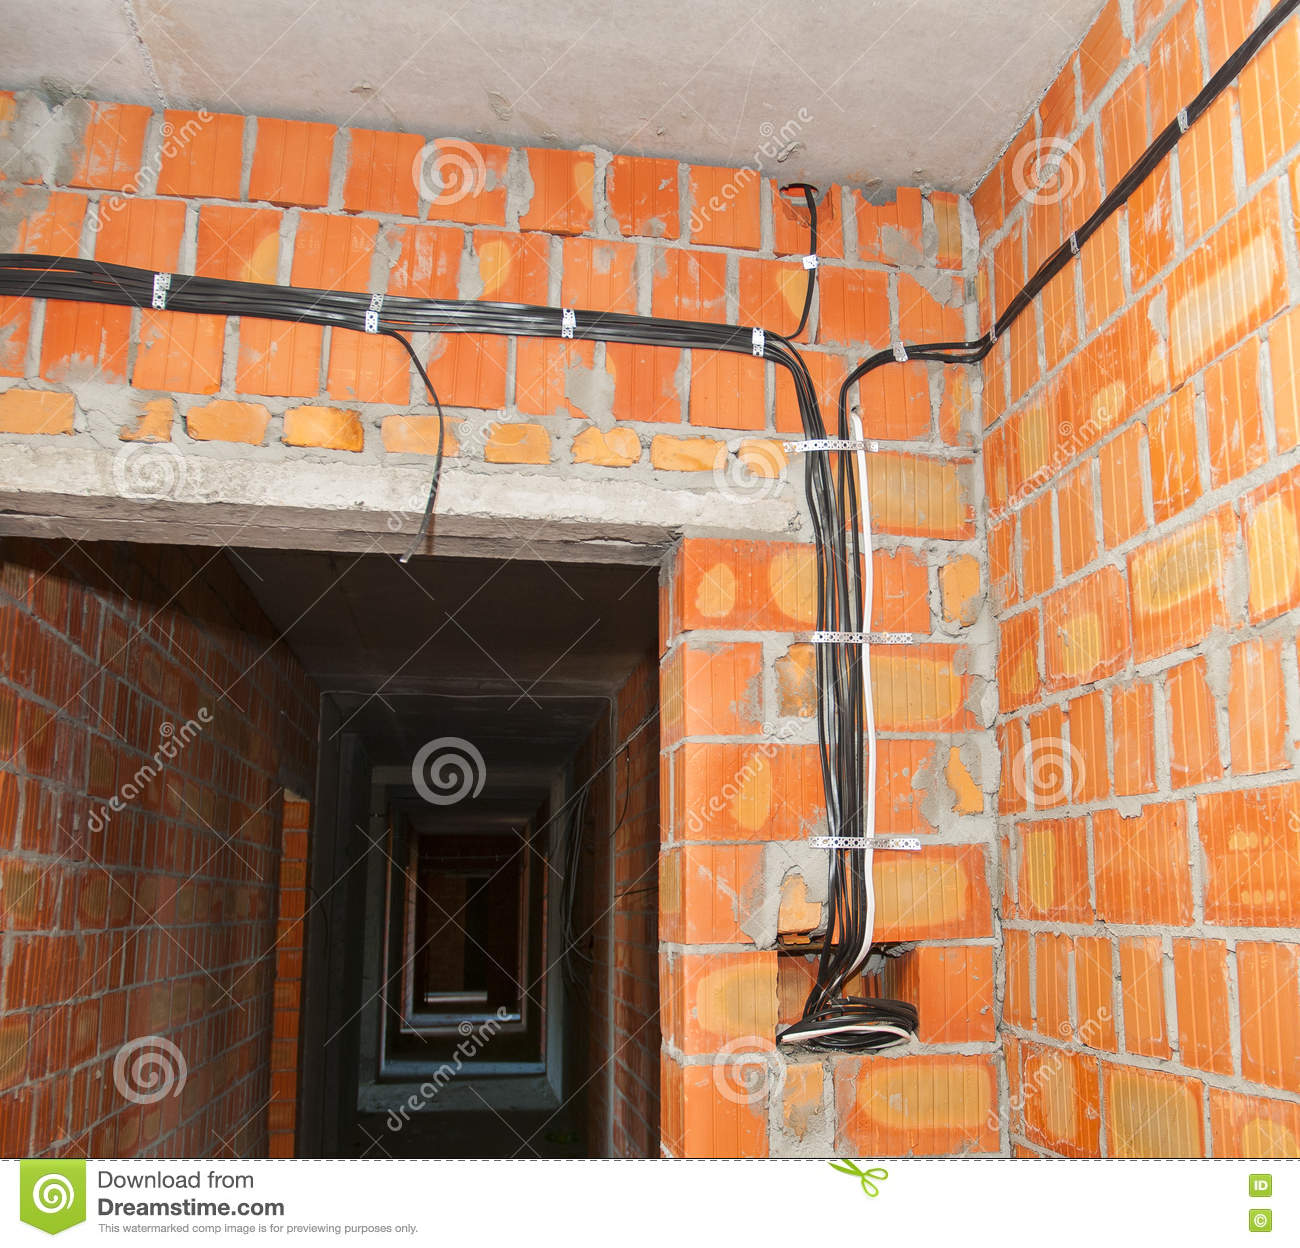 bricklayer building new house with brick walls interior rooms rh dreamstime com Wall Electrical Wiring install wiring in brick wall